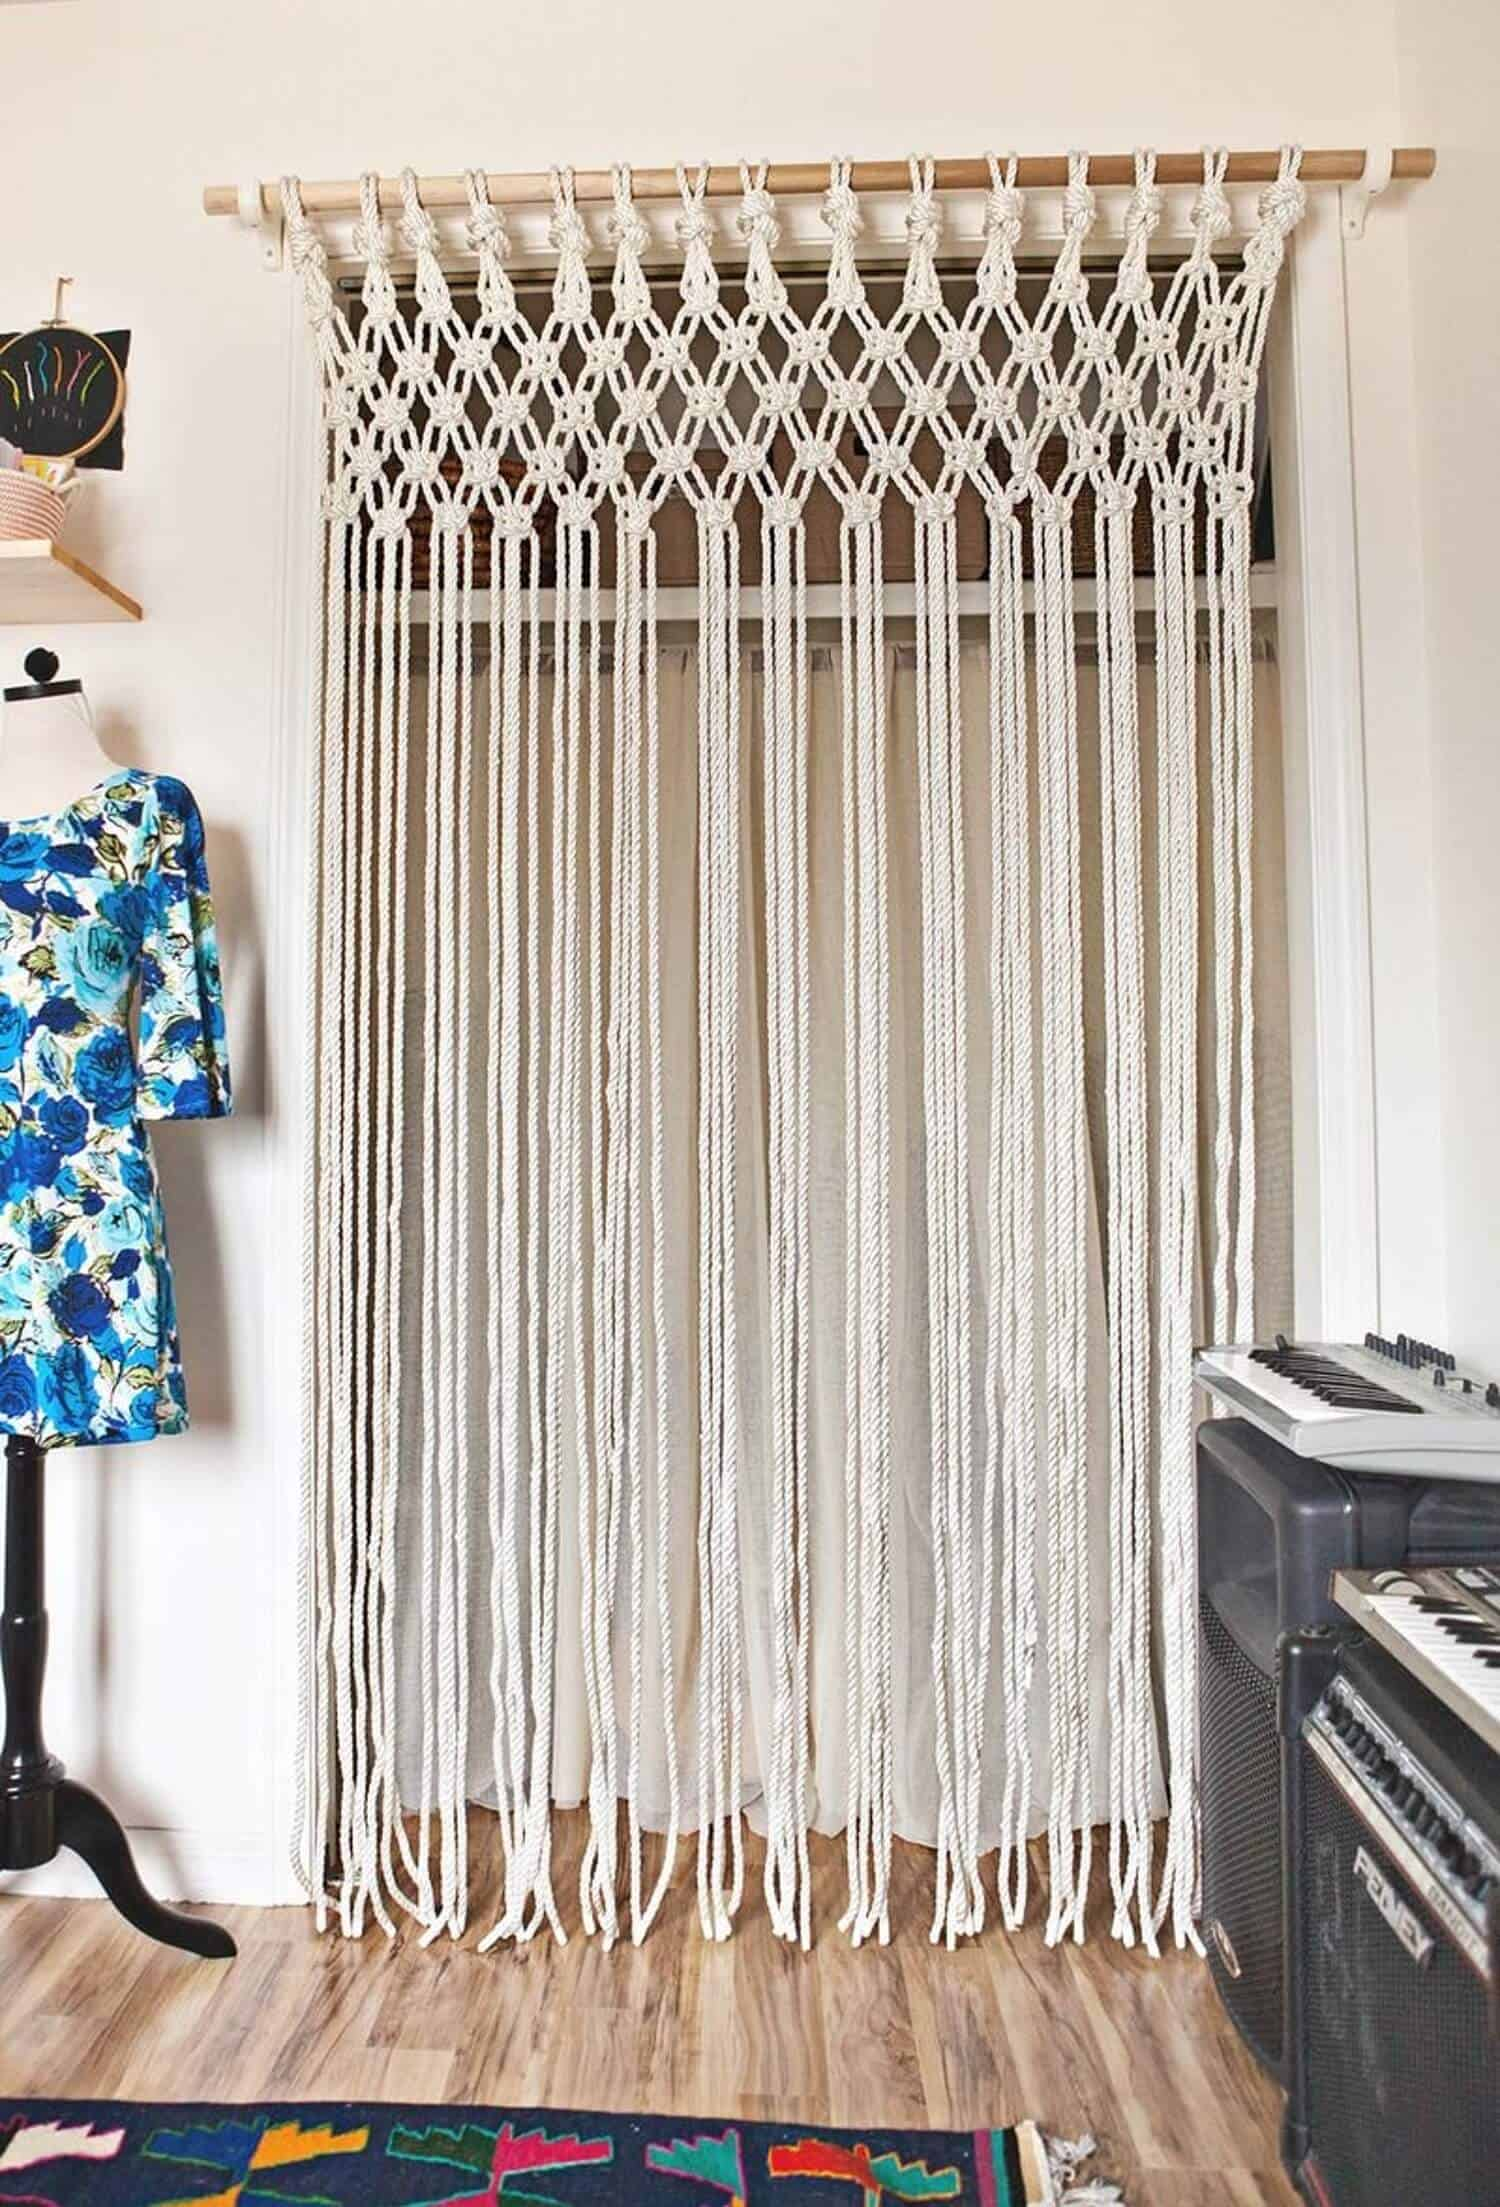 Macrame large wall curtain hanger